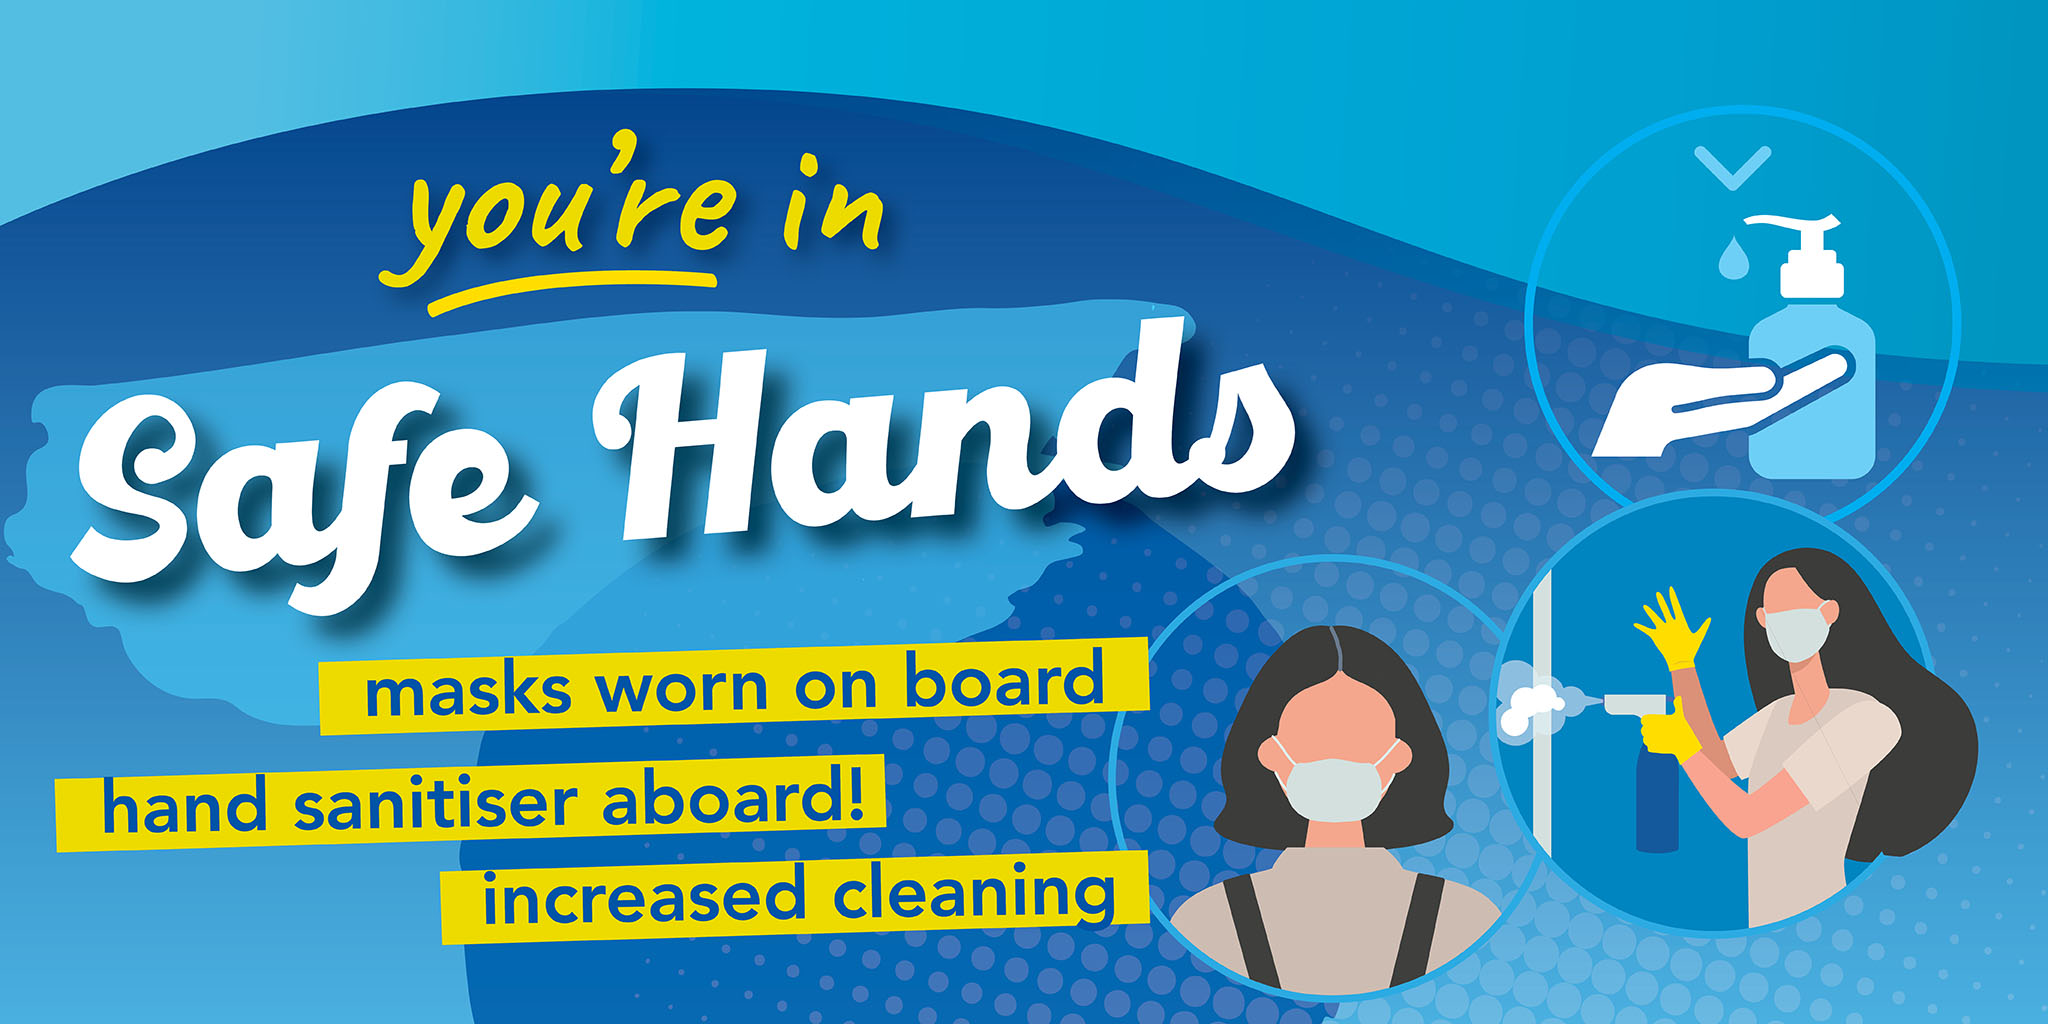 Image reading 'you're in safe hands' with an image of hand sanitiser, a person wearing a face covering and someone cleaning. Text reading 'Maks worn on board. Hand sanitiser aboard! Increased cleaning.'